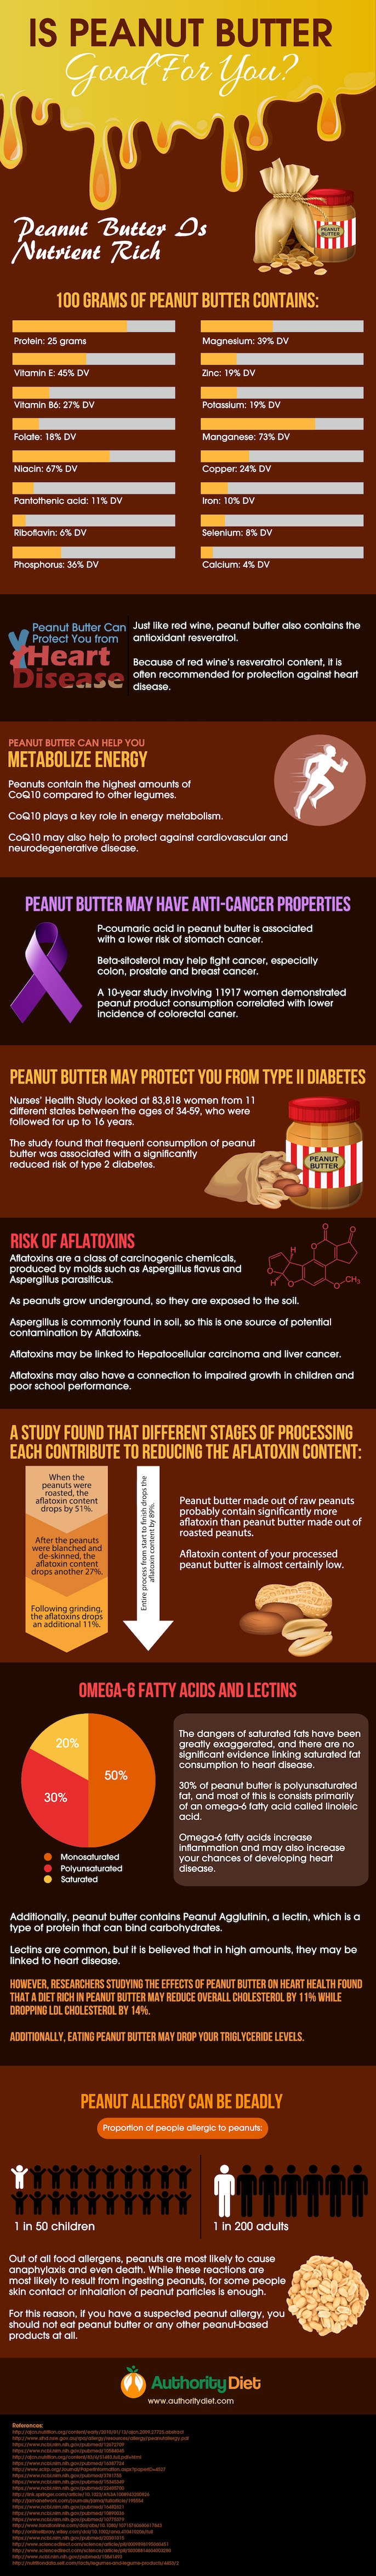 peanut-butter-good-infographic